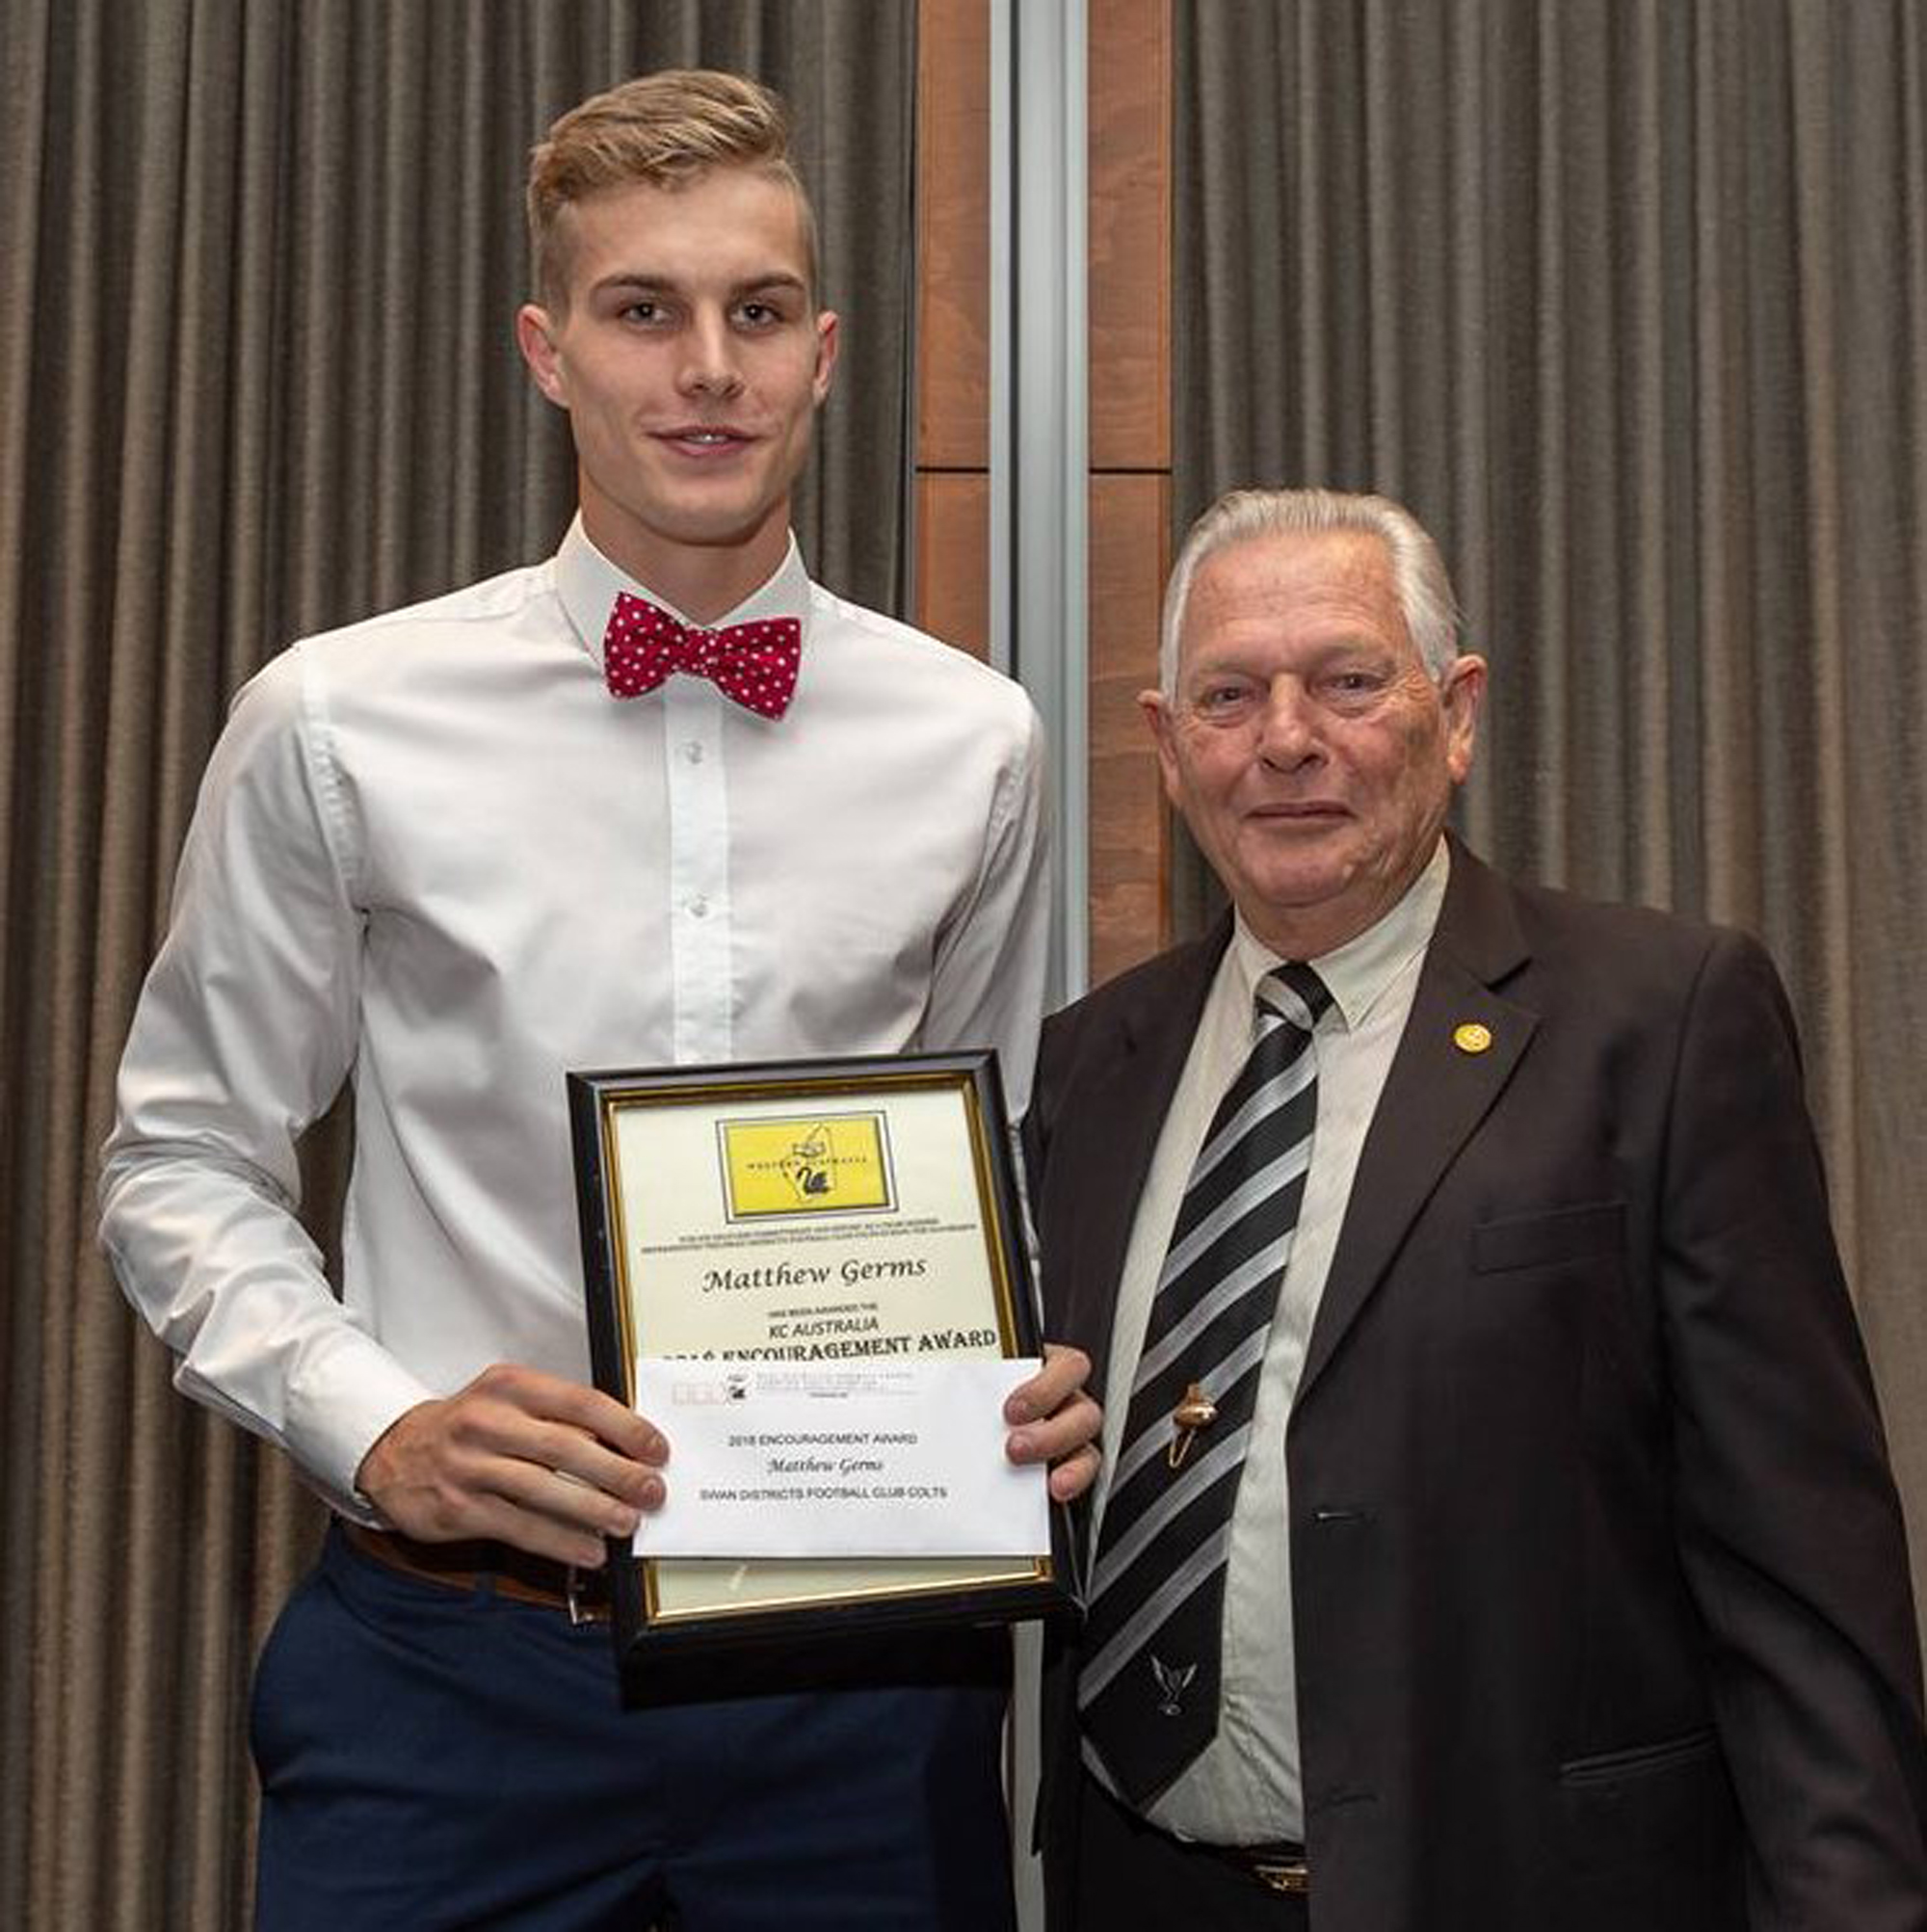 Swans Encouragement Award 2018